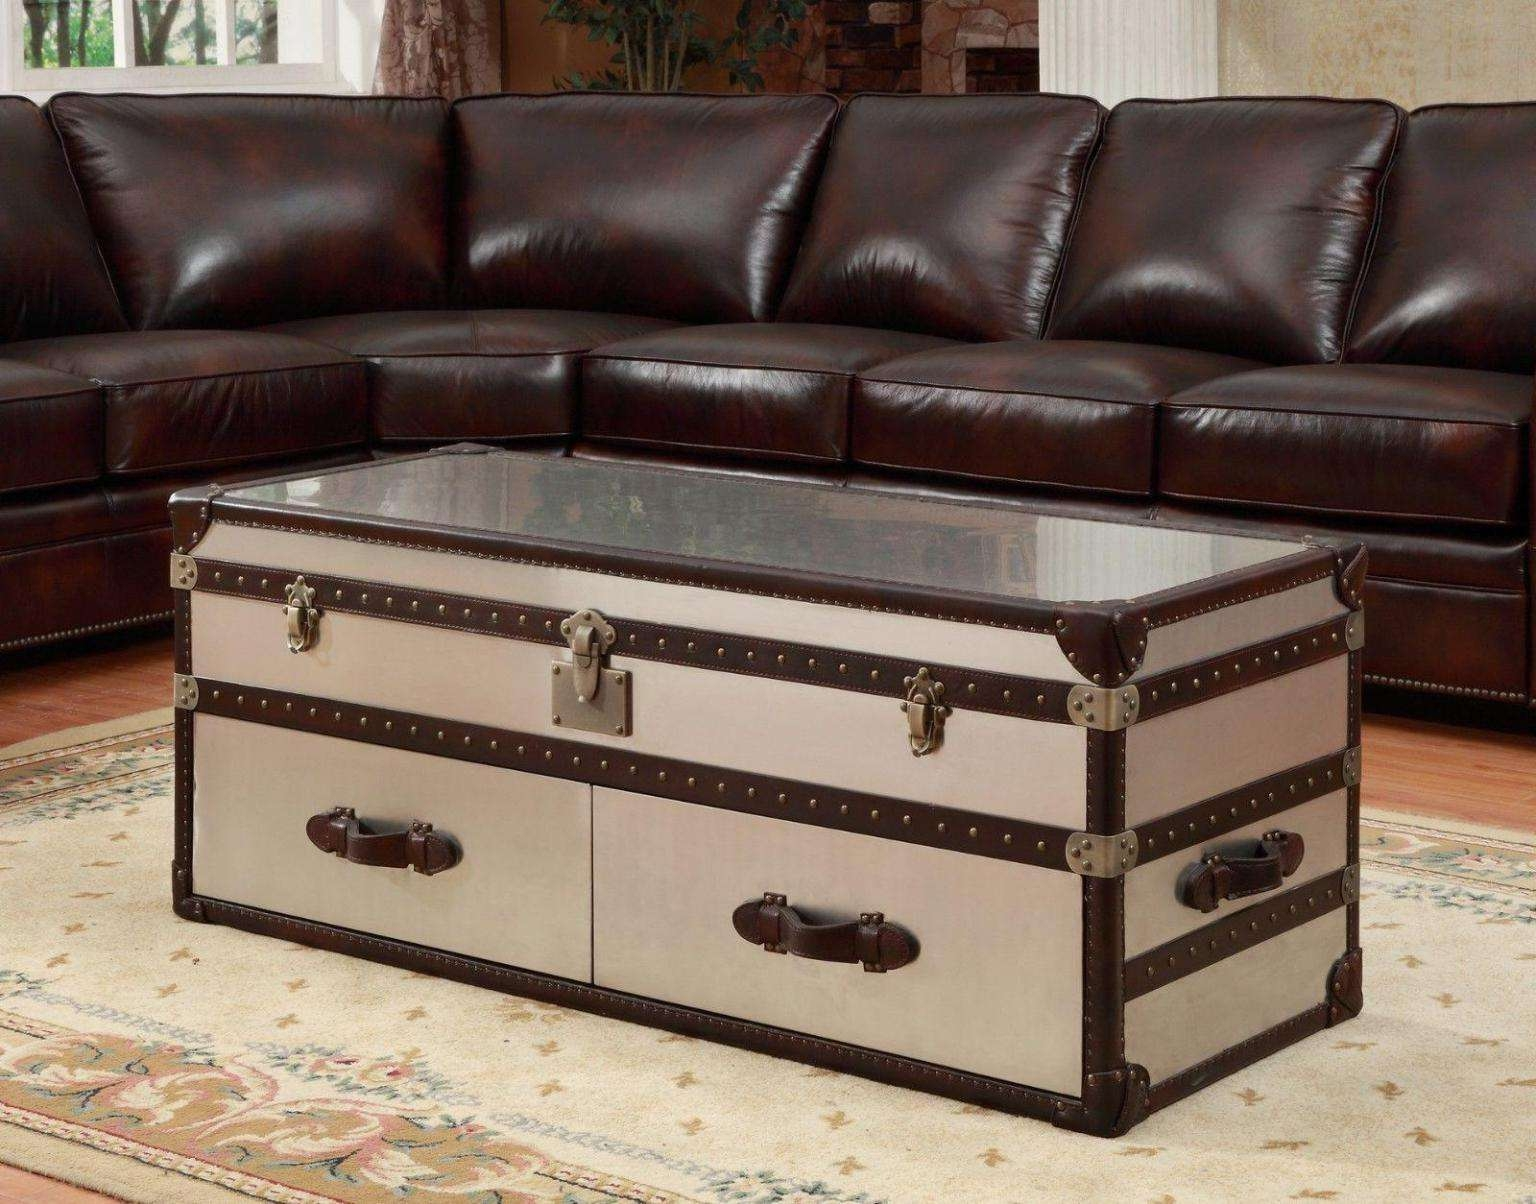 Widely Used Large Trunk Coffee Tables Inside Coffee Tables : Beautiful Glass Restoration Hardware Richards (View 4 of 20)